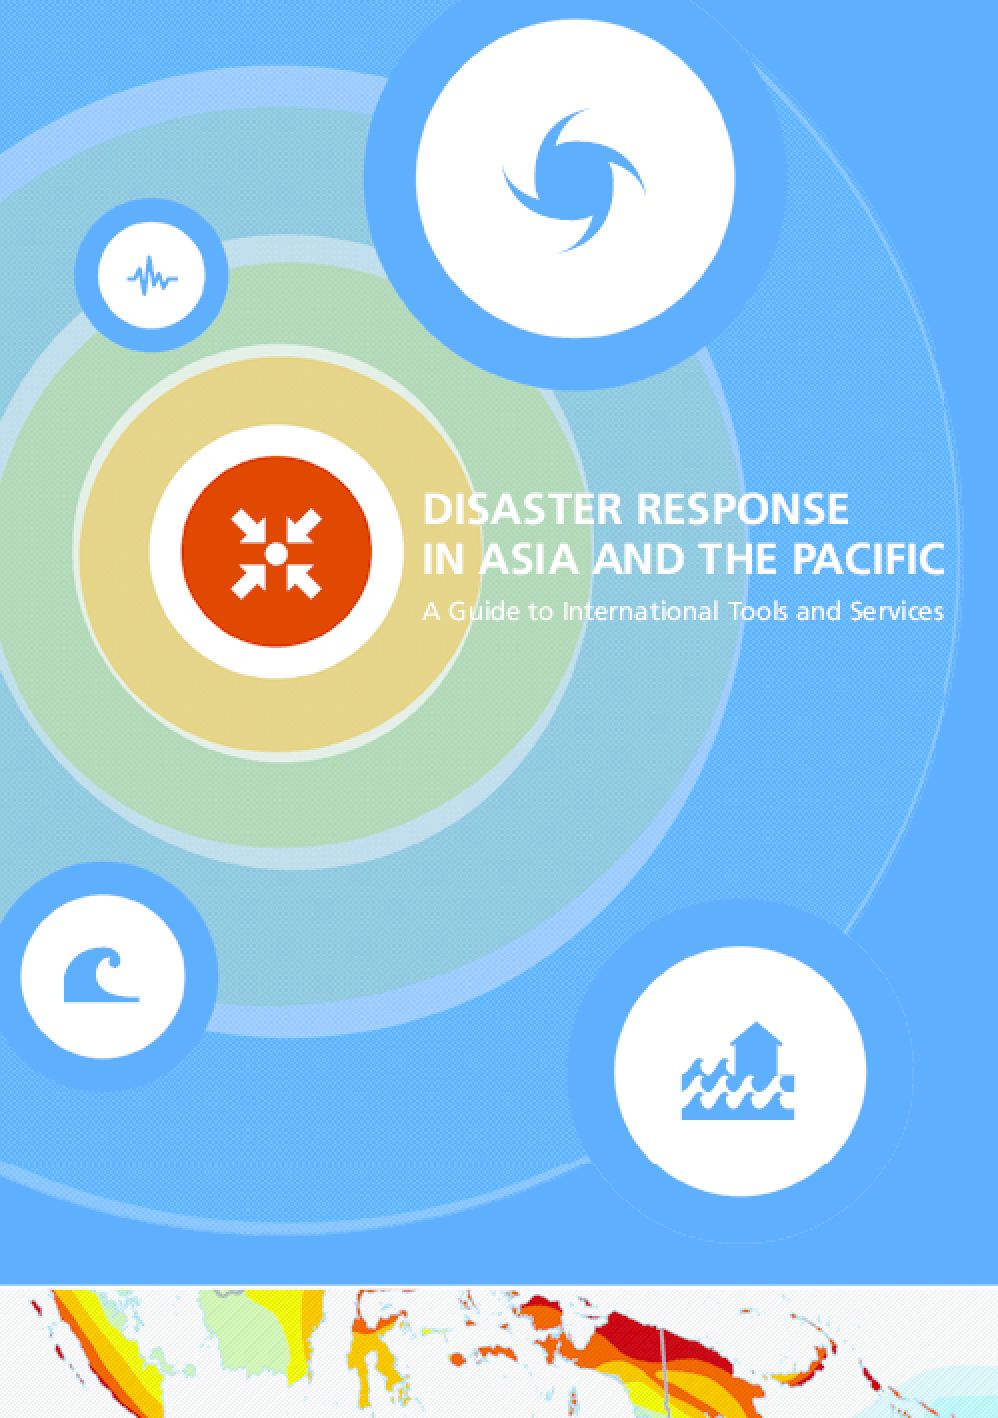 Disaster Response in Asia and the Pacific: A Guide to International Tools and Services